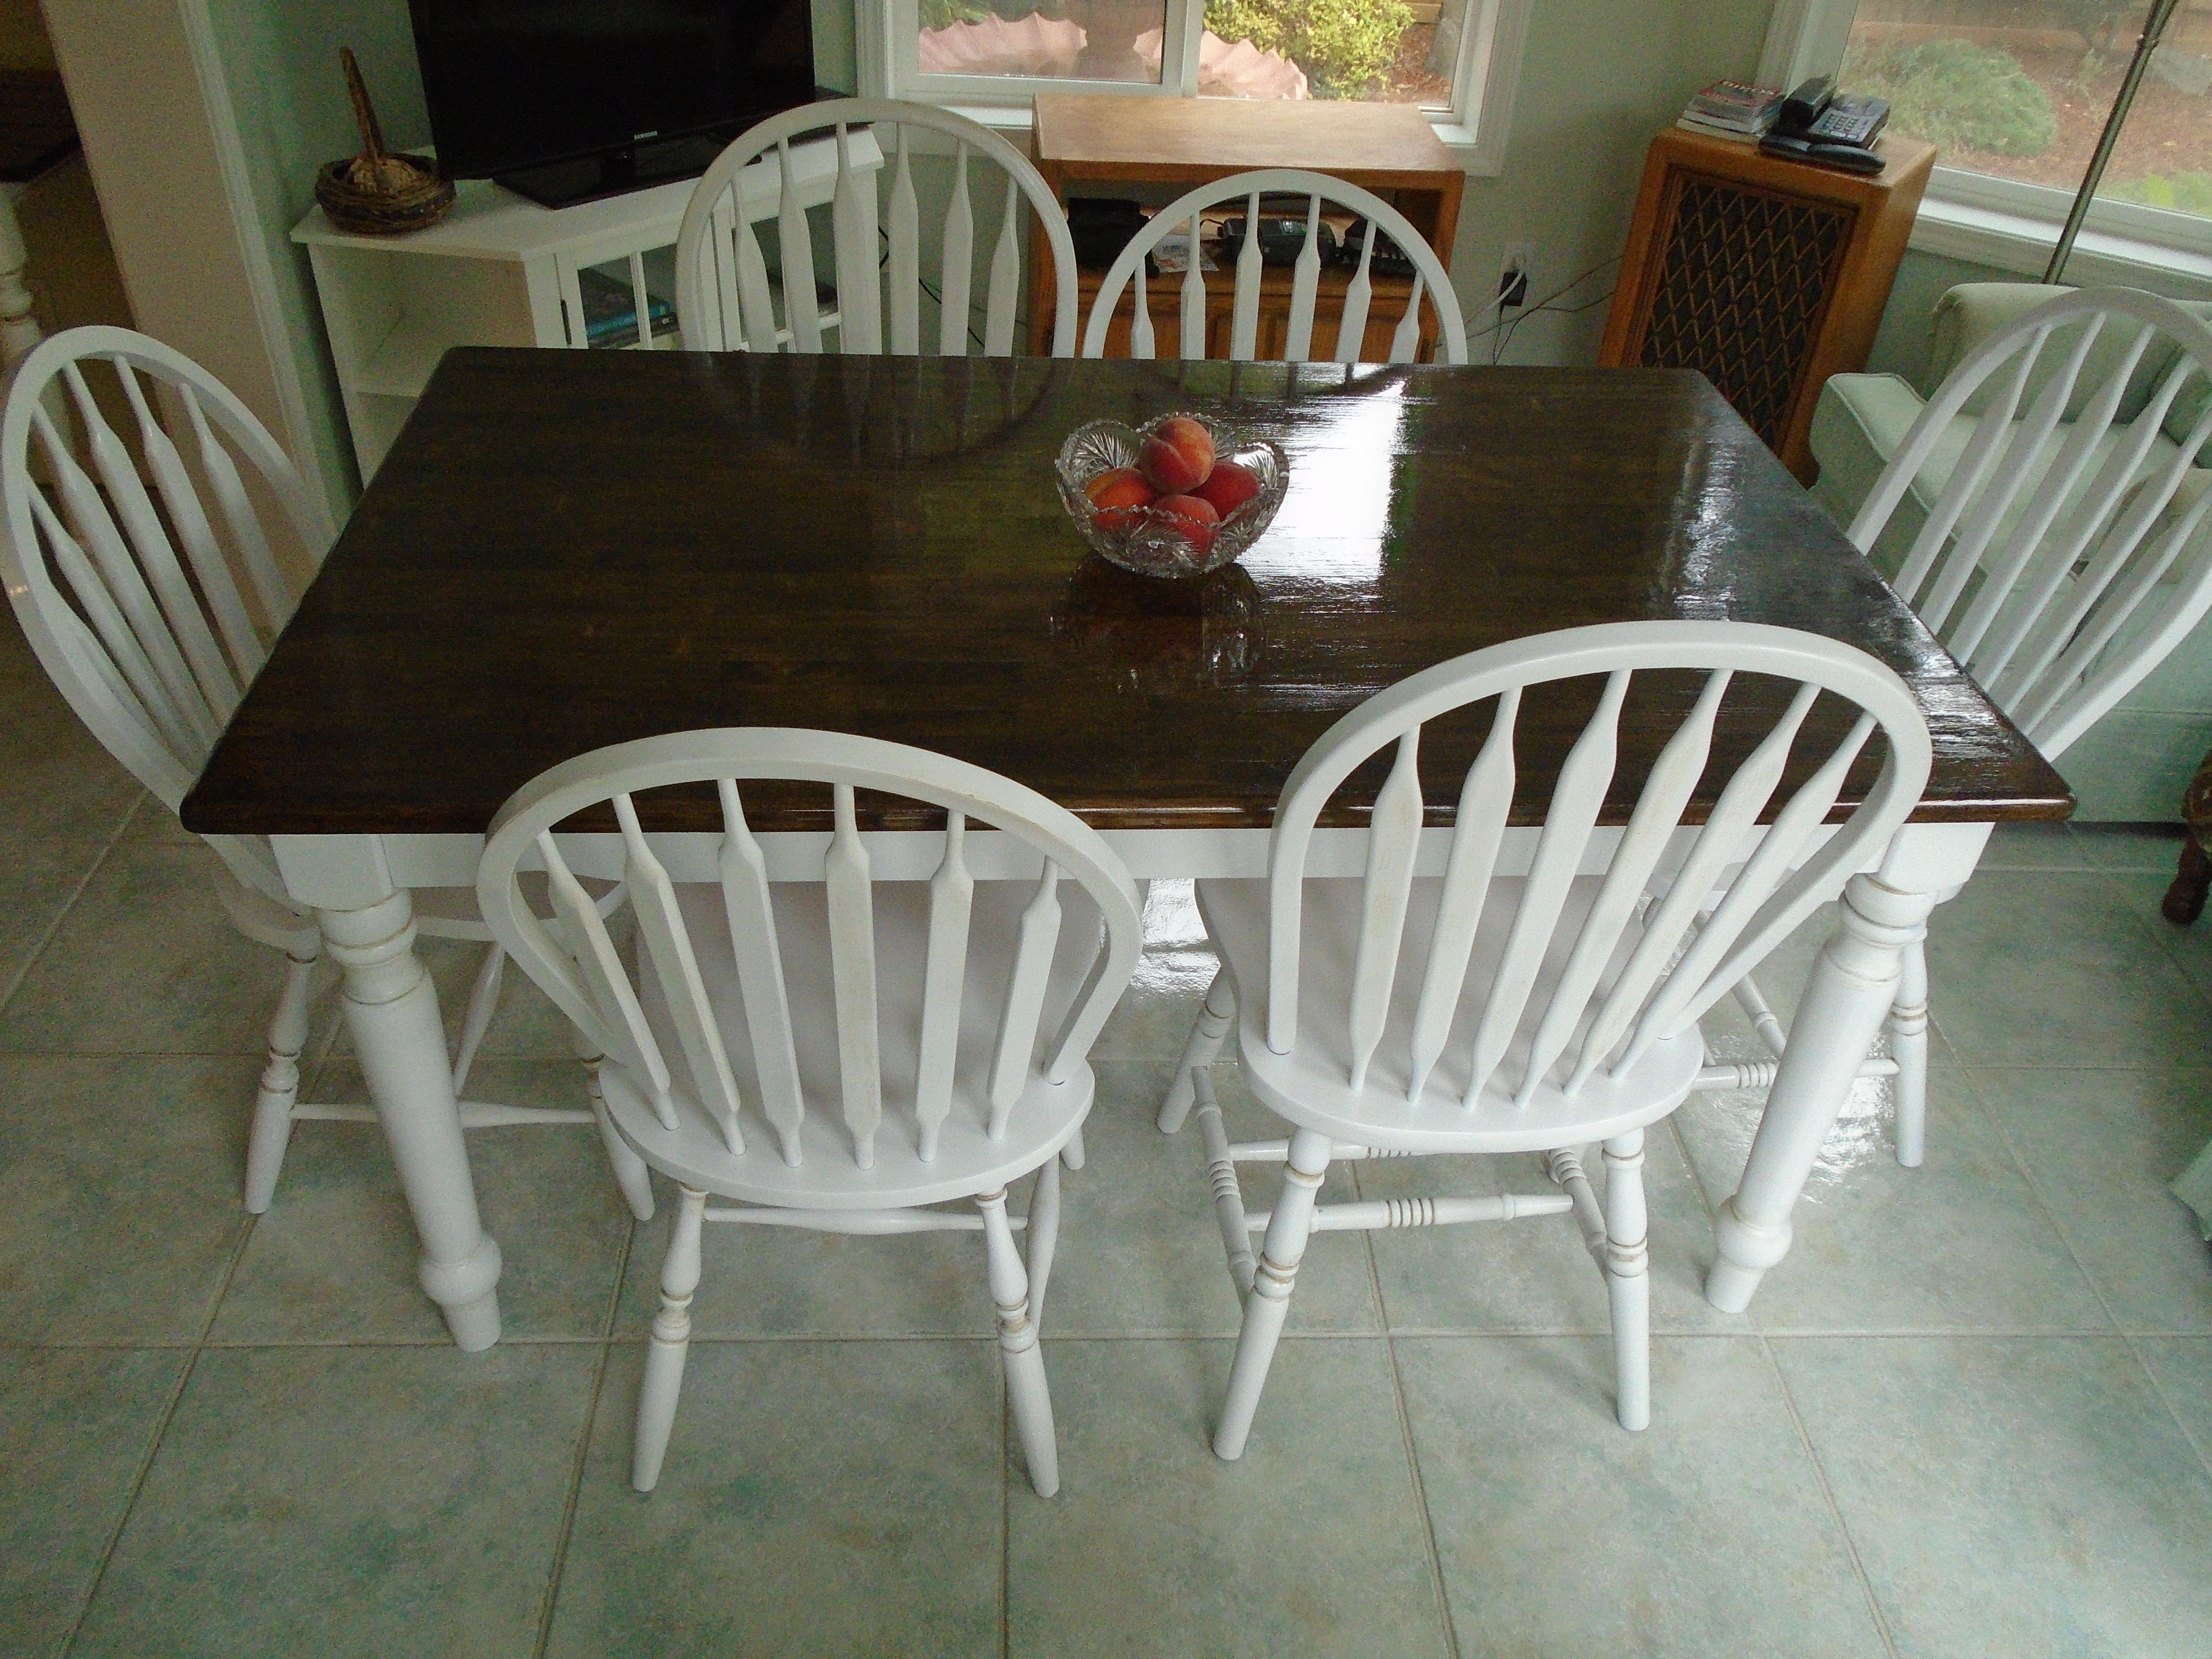 Rustic farmhouse table brown stained top, white painted